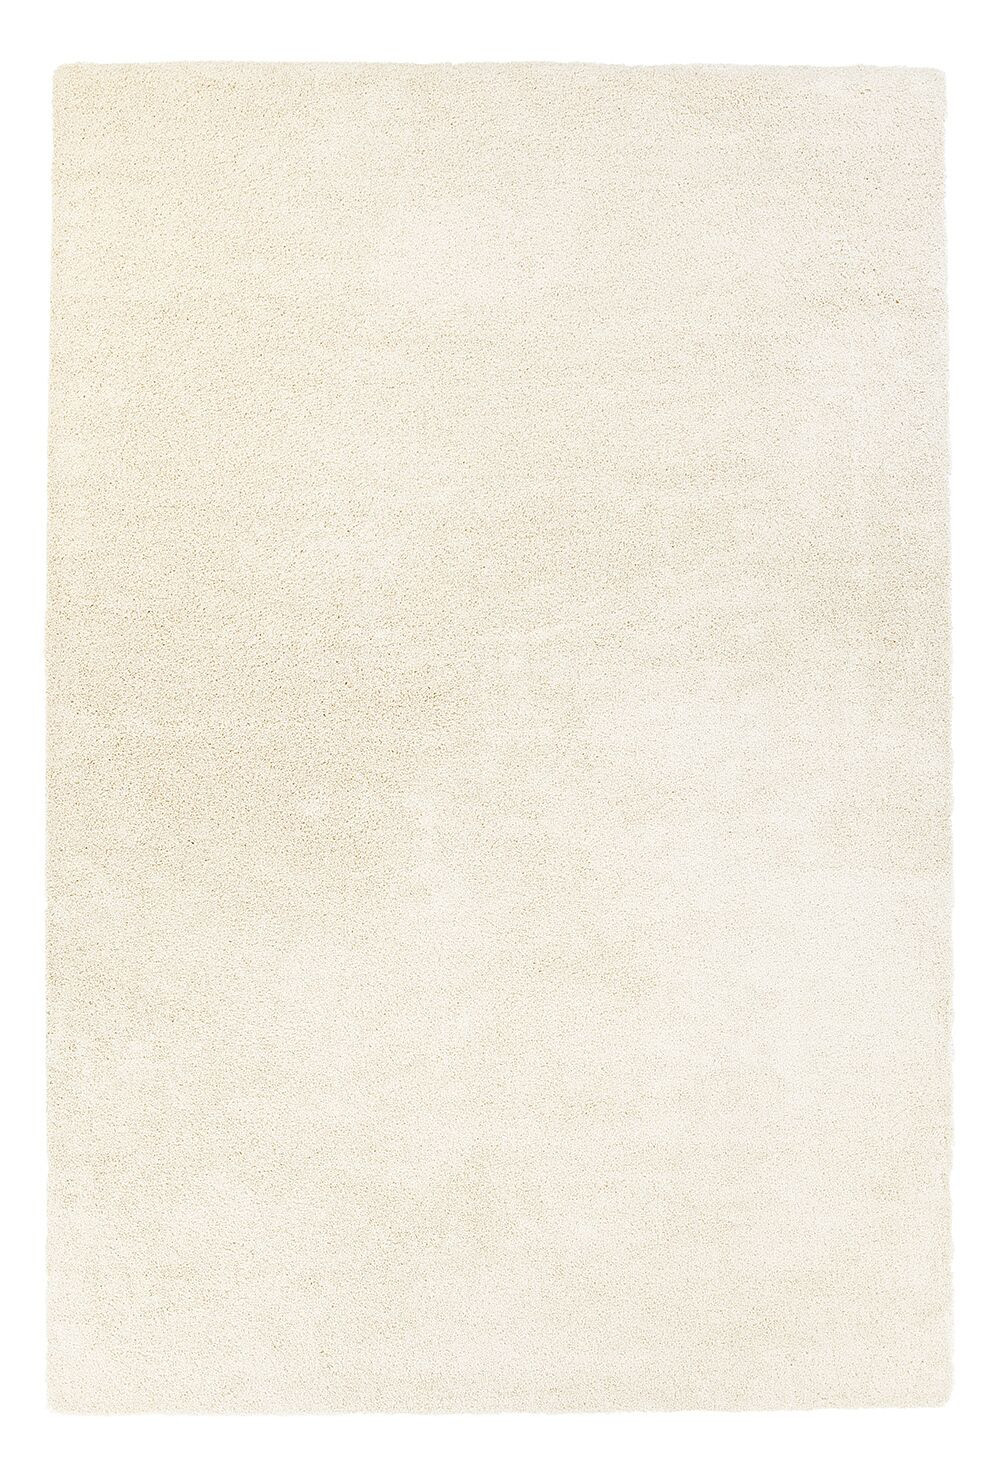 Elysee matto 133 x 200 cm, 11 pure white